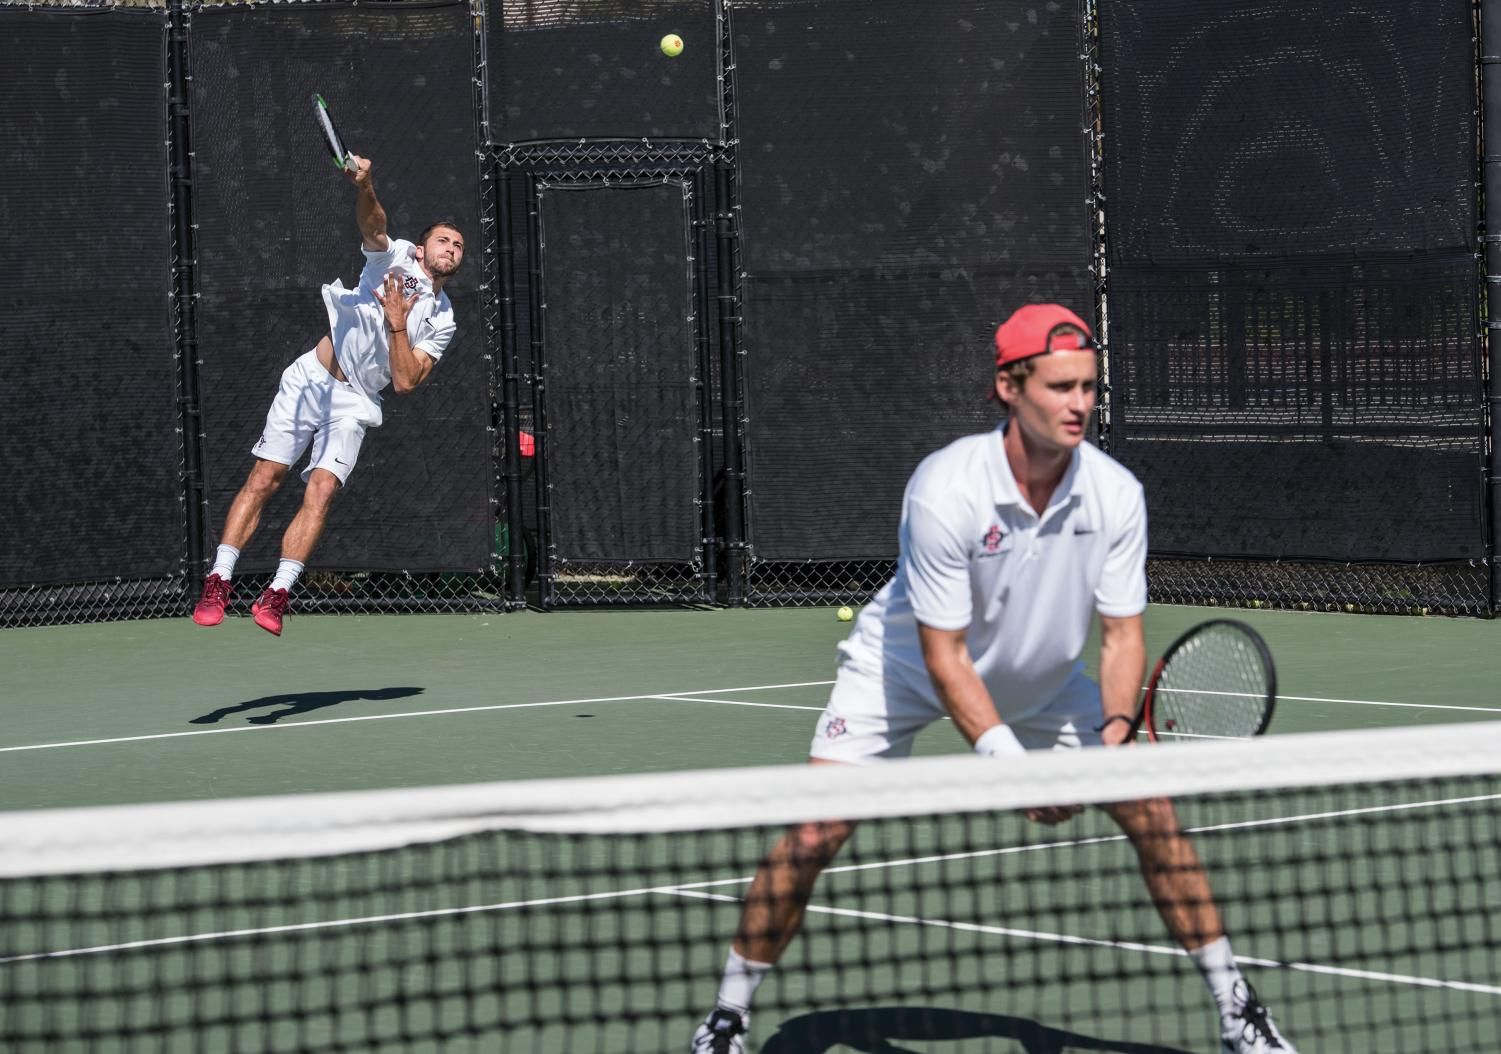 Junior Sander Gjoels-Andersen (front) and sophomore Nicholas Mitchell compete in doubles against Cal on March 1 at the Aztec Tennis Center. The match was suspended with Cal winning 4-3.